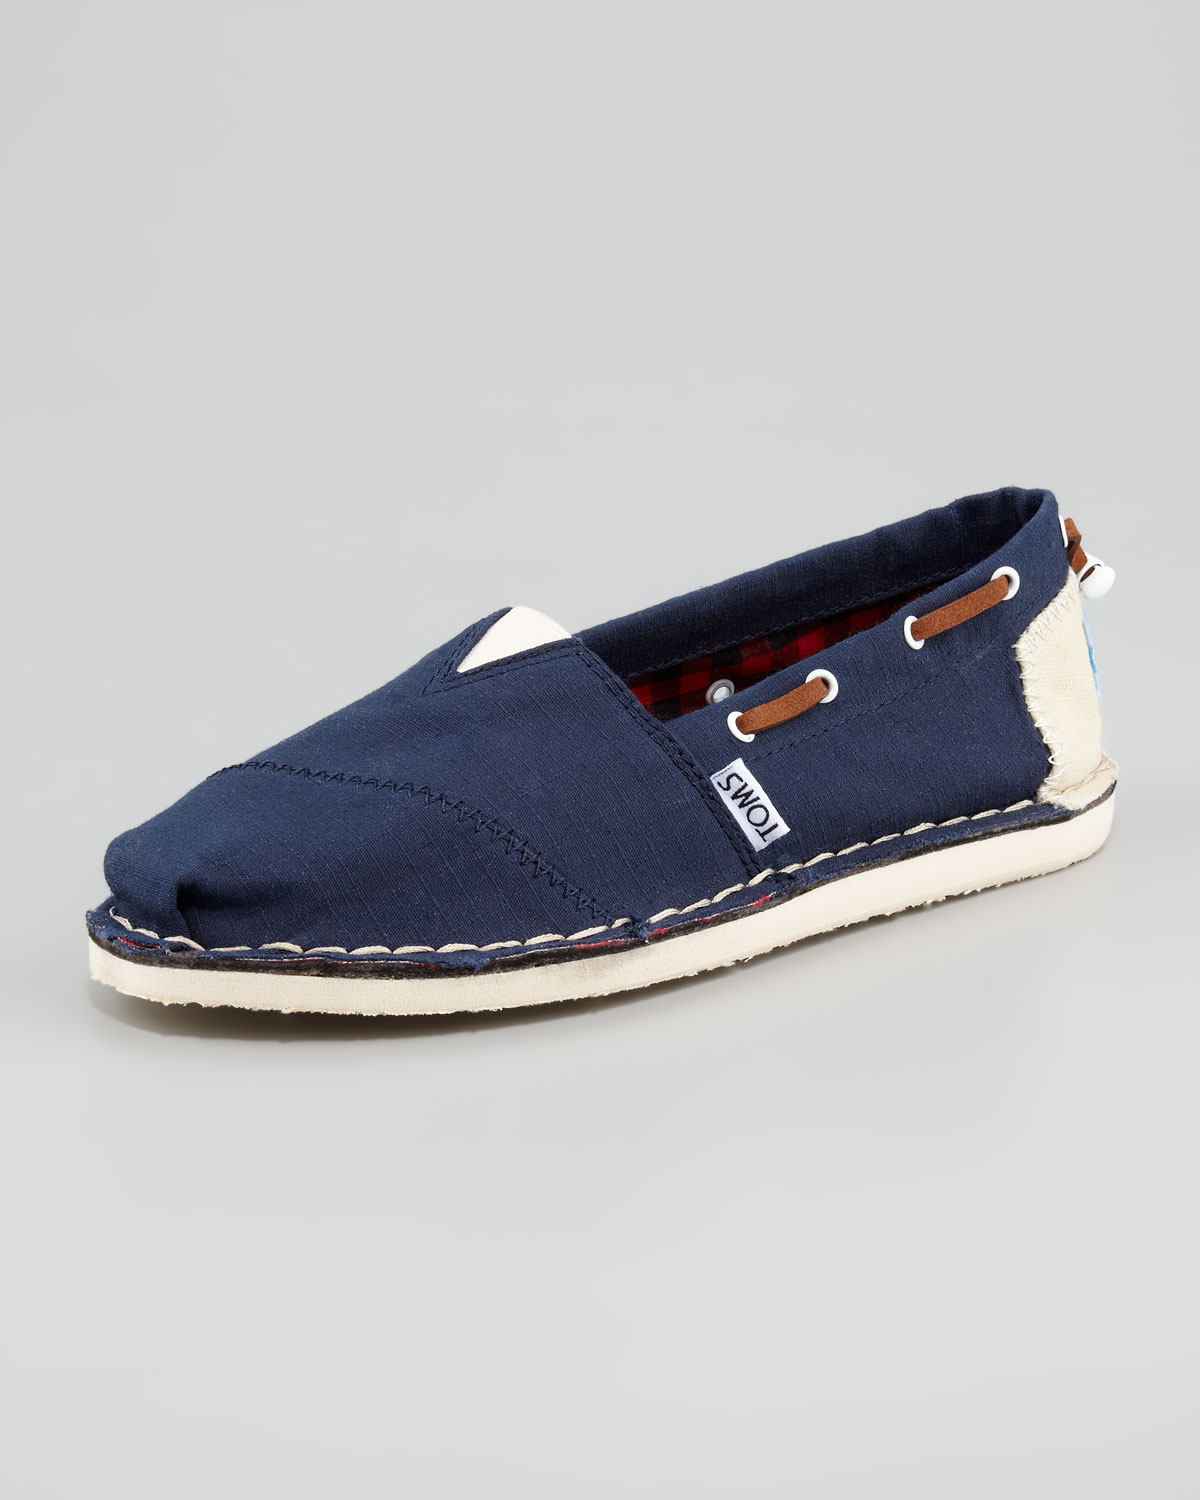 Womens Casual Shoes With Ties